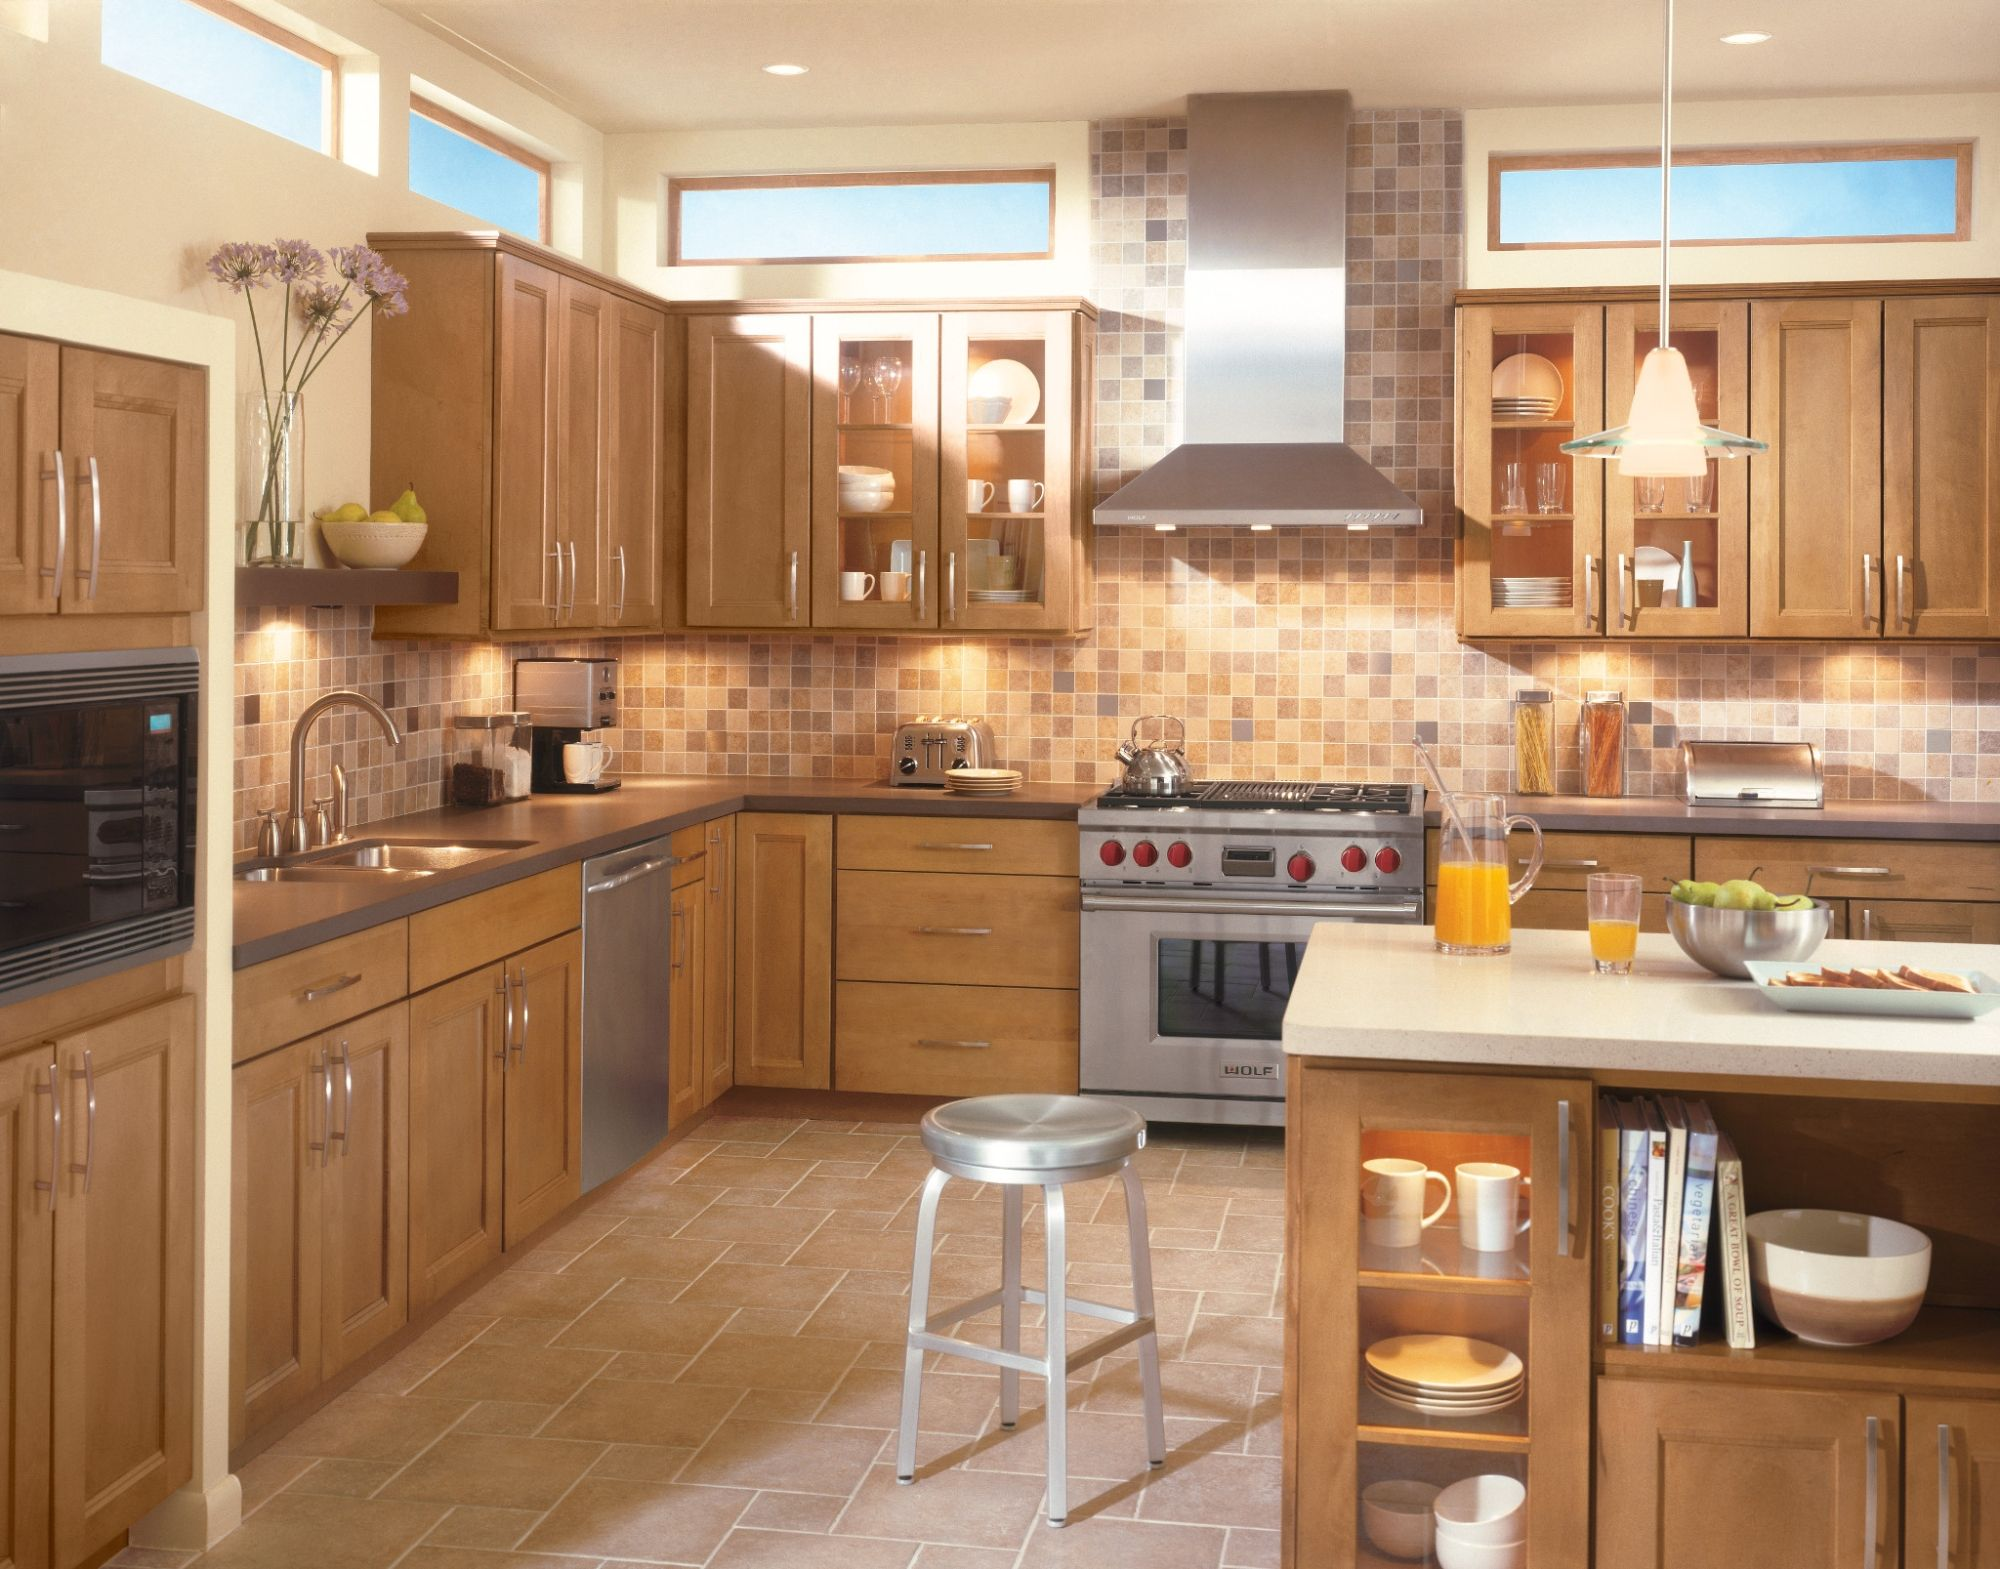 Del Ray | Wooden kitchen cabinets, Pine kitchen cabinets ...